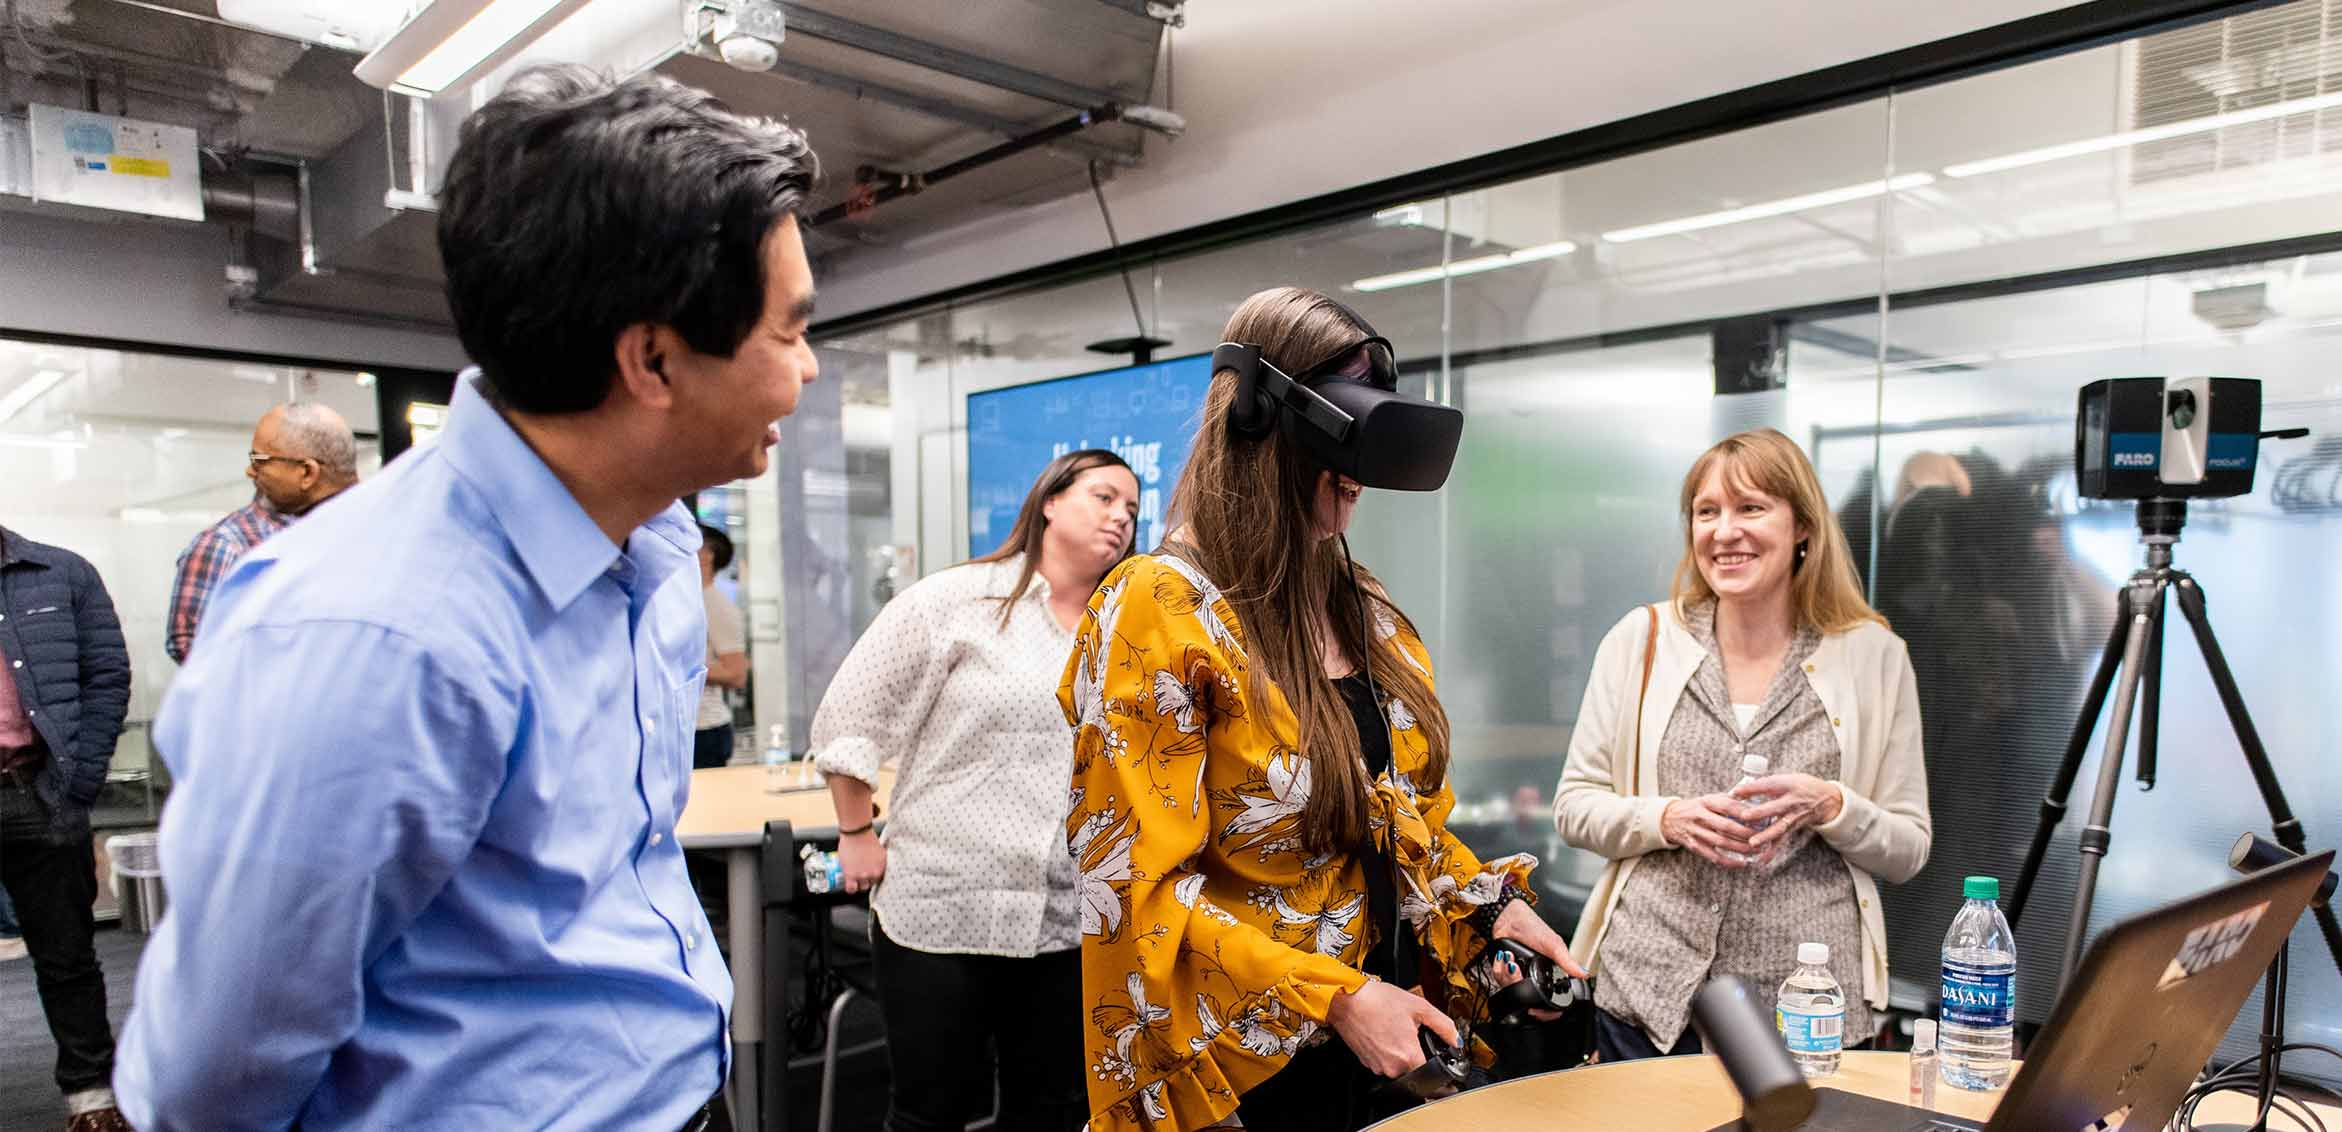 Ideation Lab visitors try on a virtual reality head set